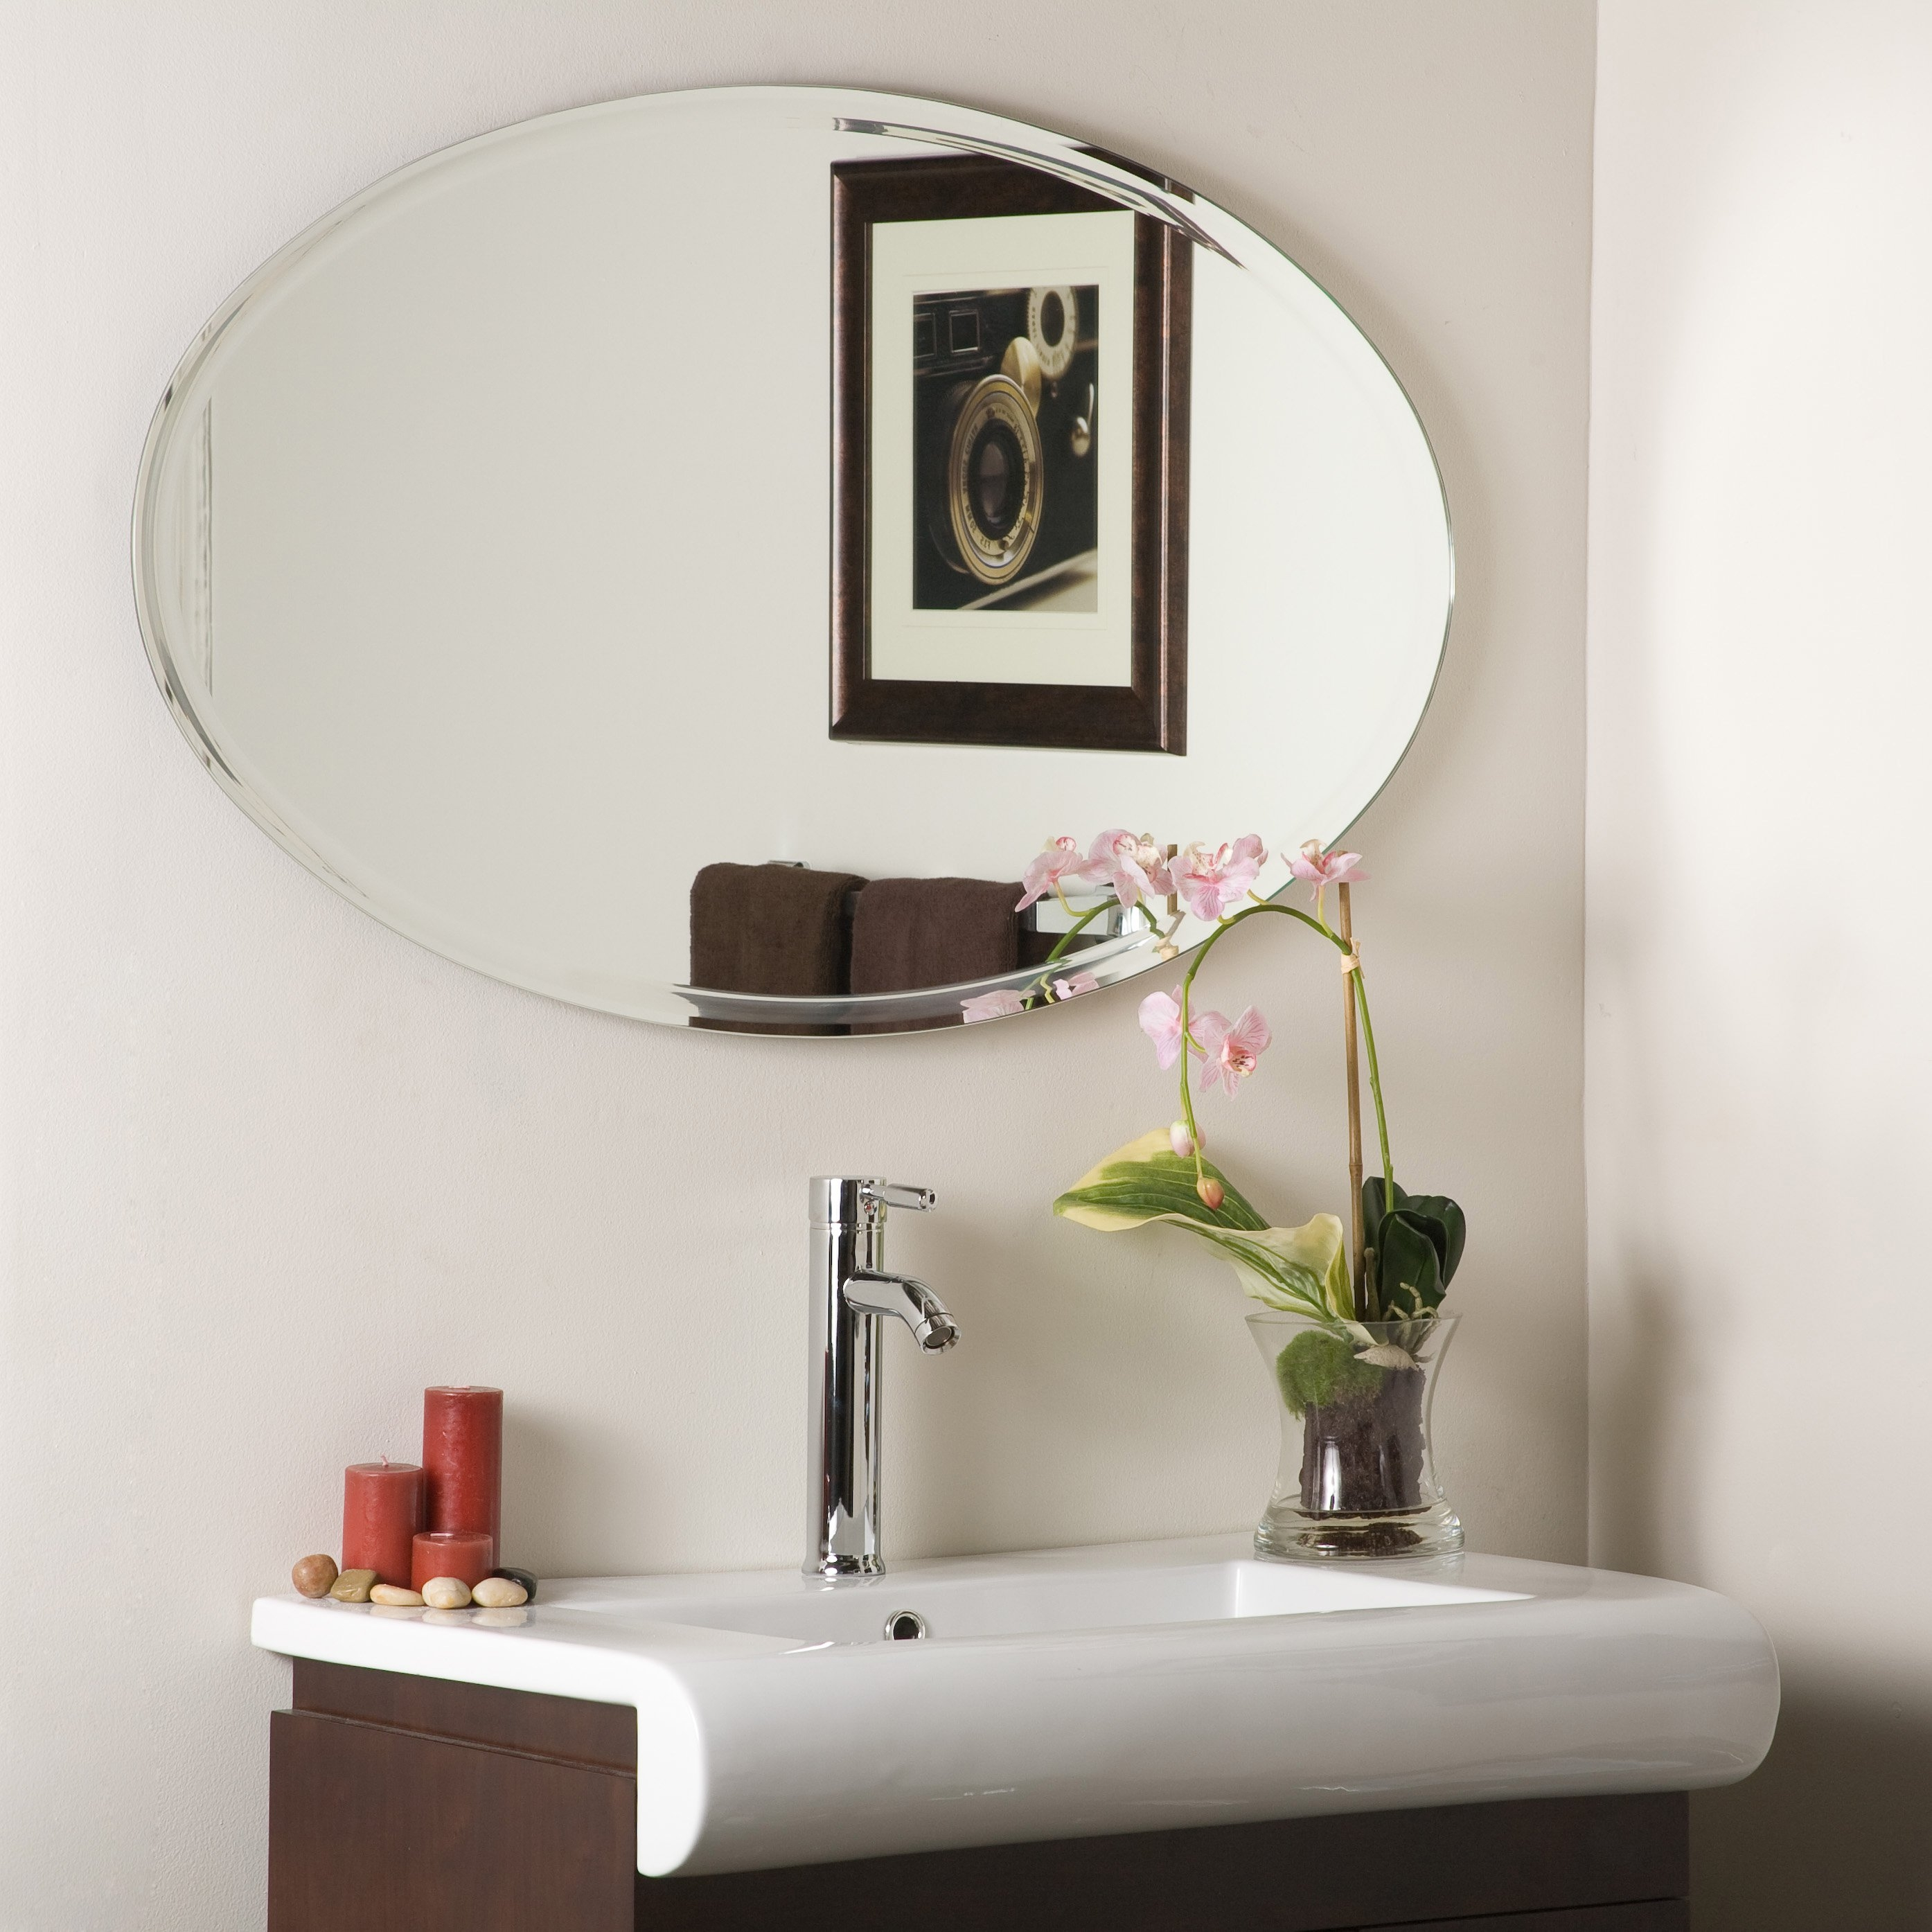 Decor Wonderland Extra Long Oval Wall Mirror Beyond Stores Inside Long Oval Mirror (Image 8 of 15)